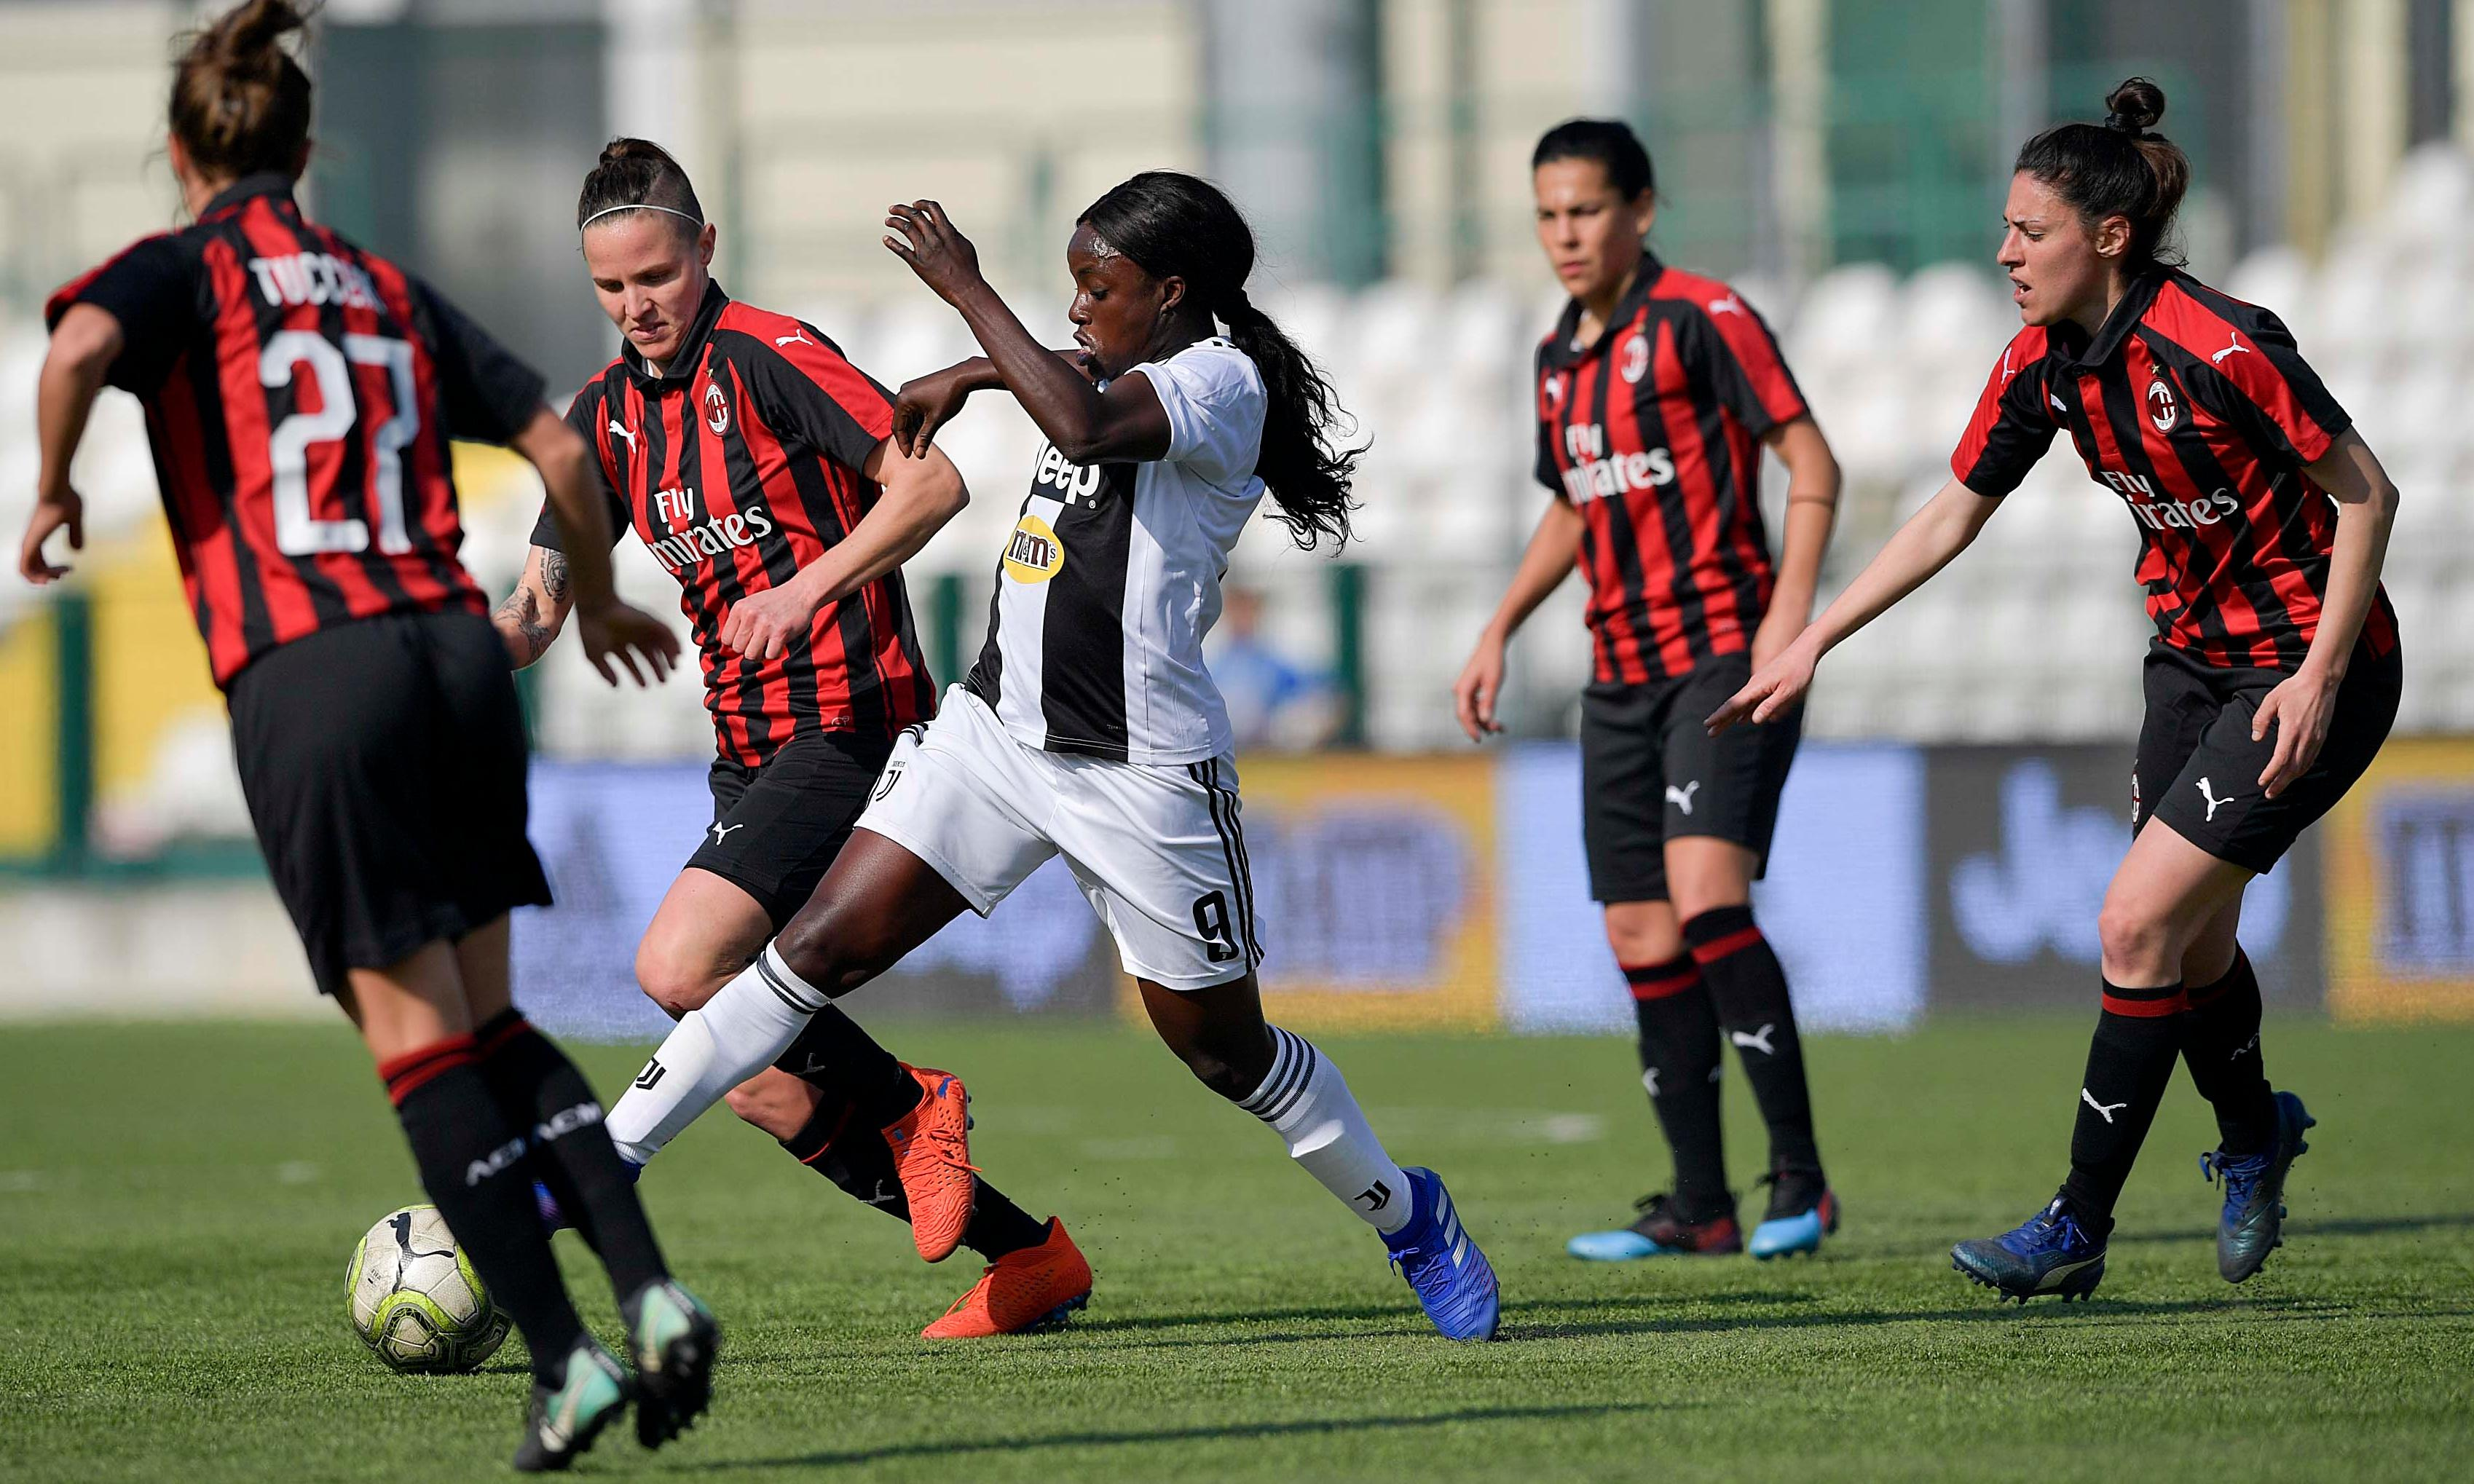 Snobs are wrong about women's Serie A. It's tight at the top and I'm learning